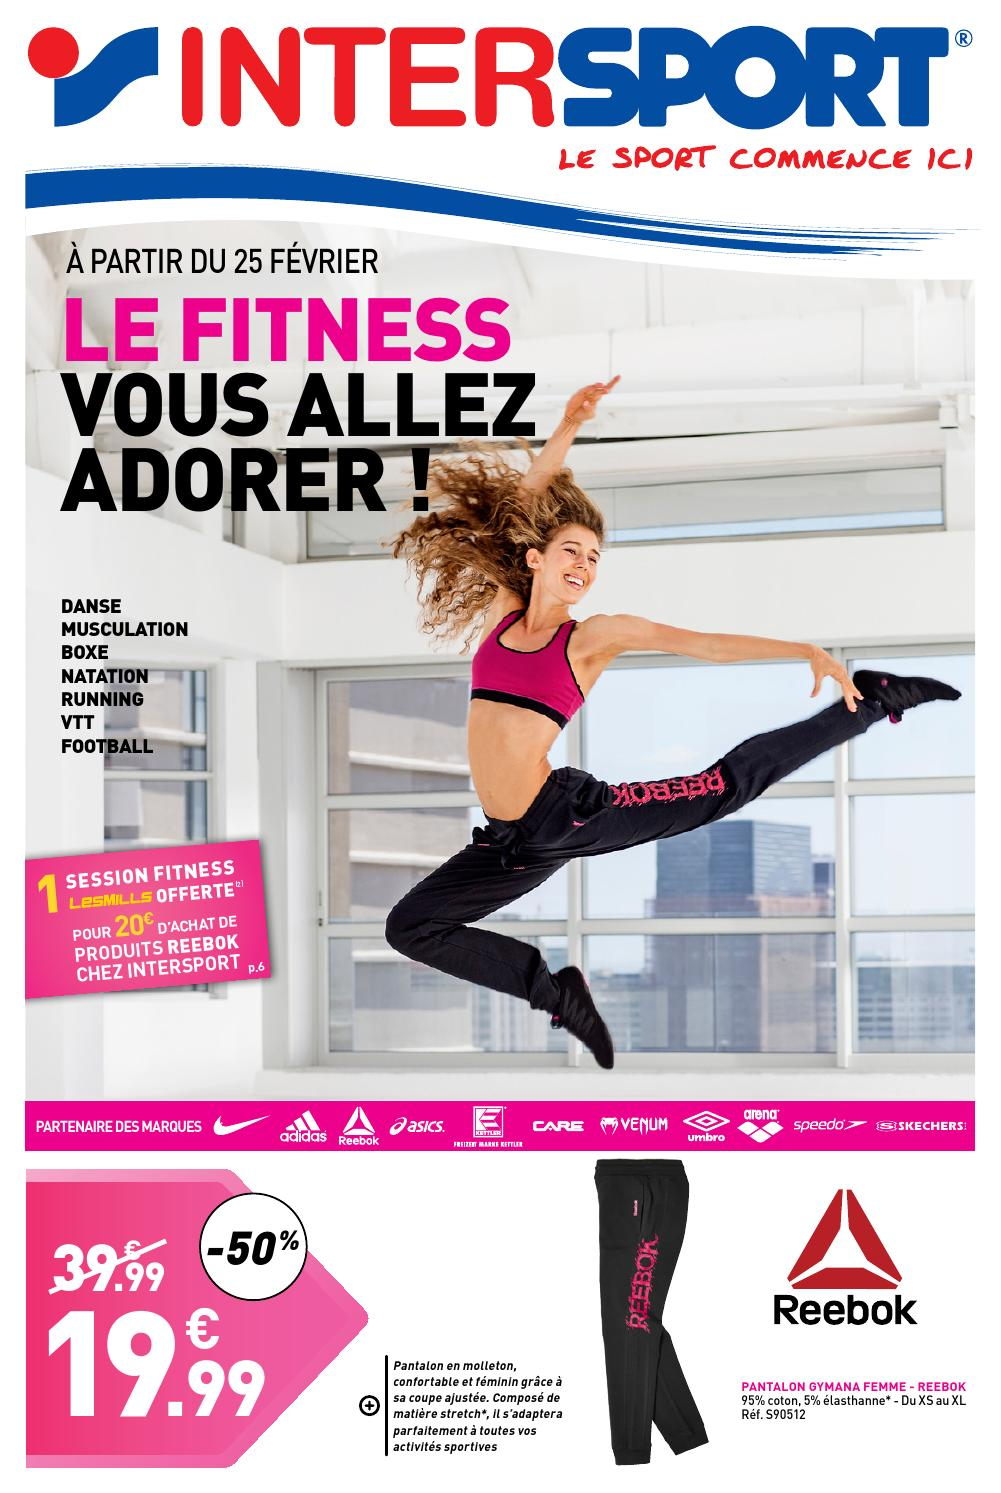 Le fitness vous aller adorer intersport by